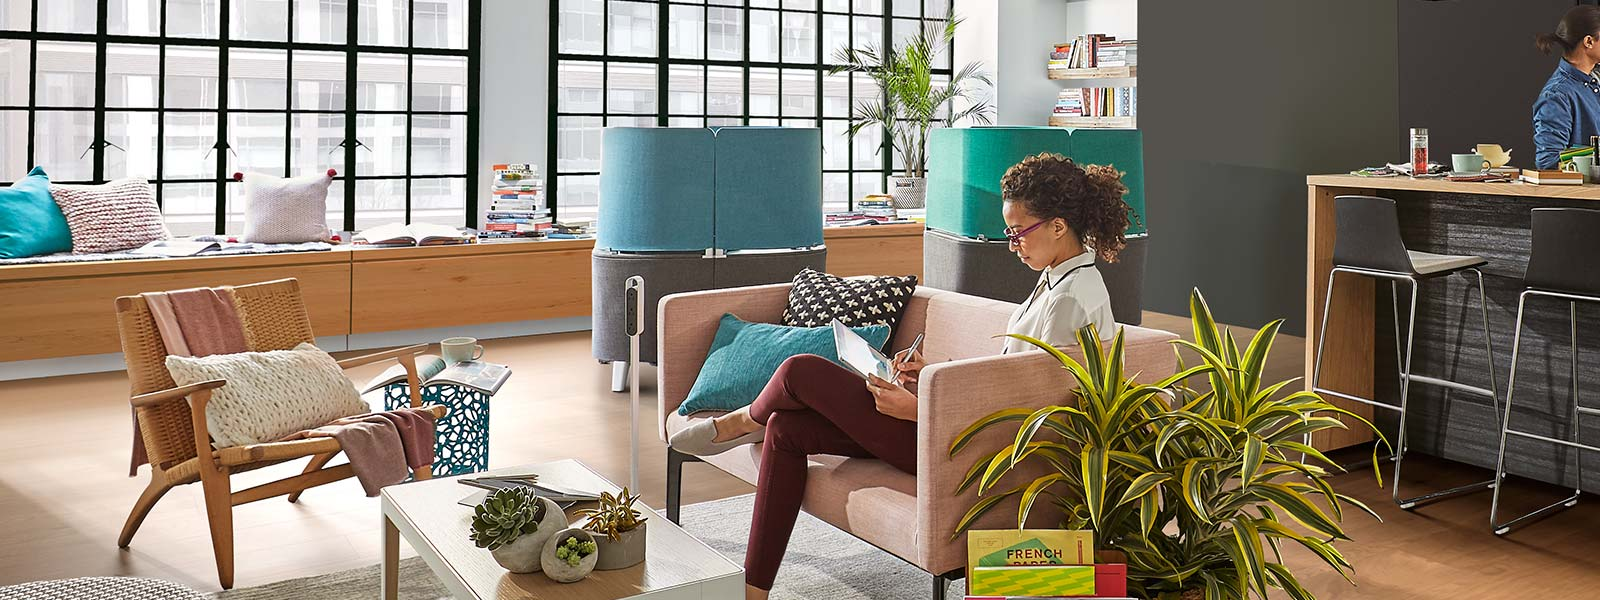 Steelcase space with people using Surface devices.